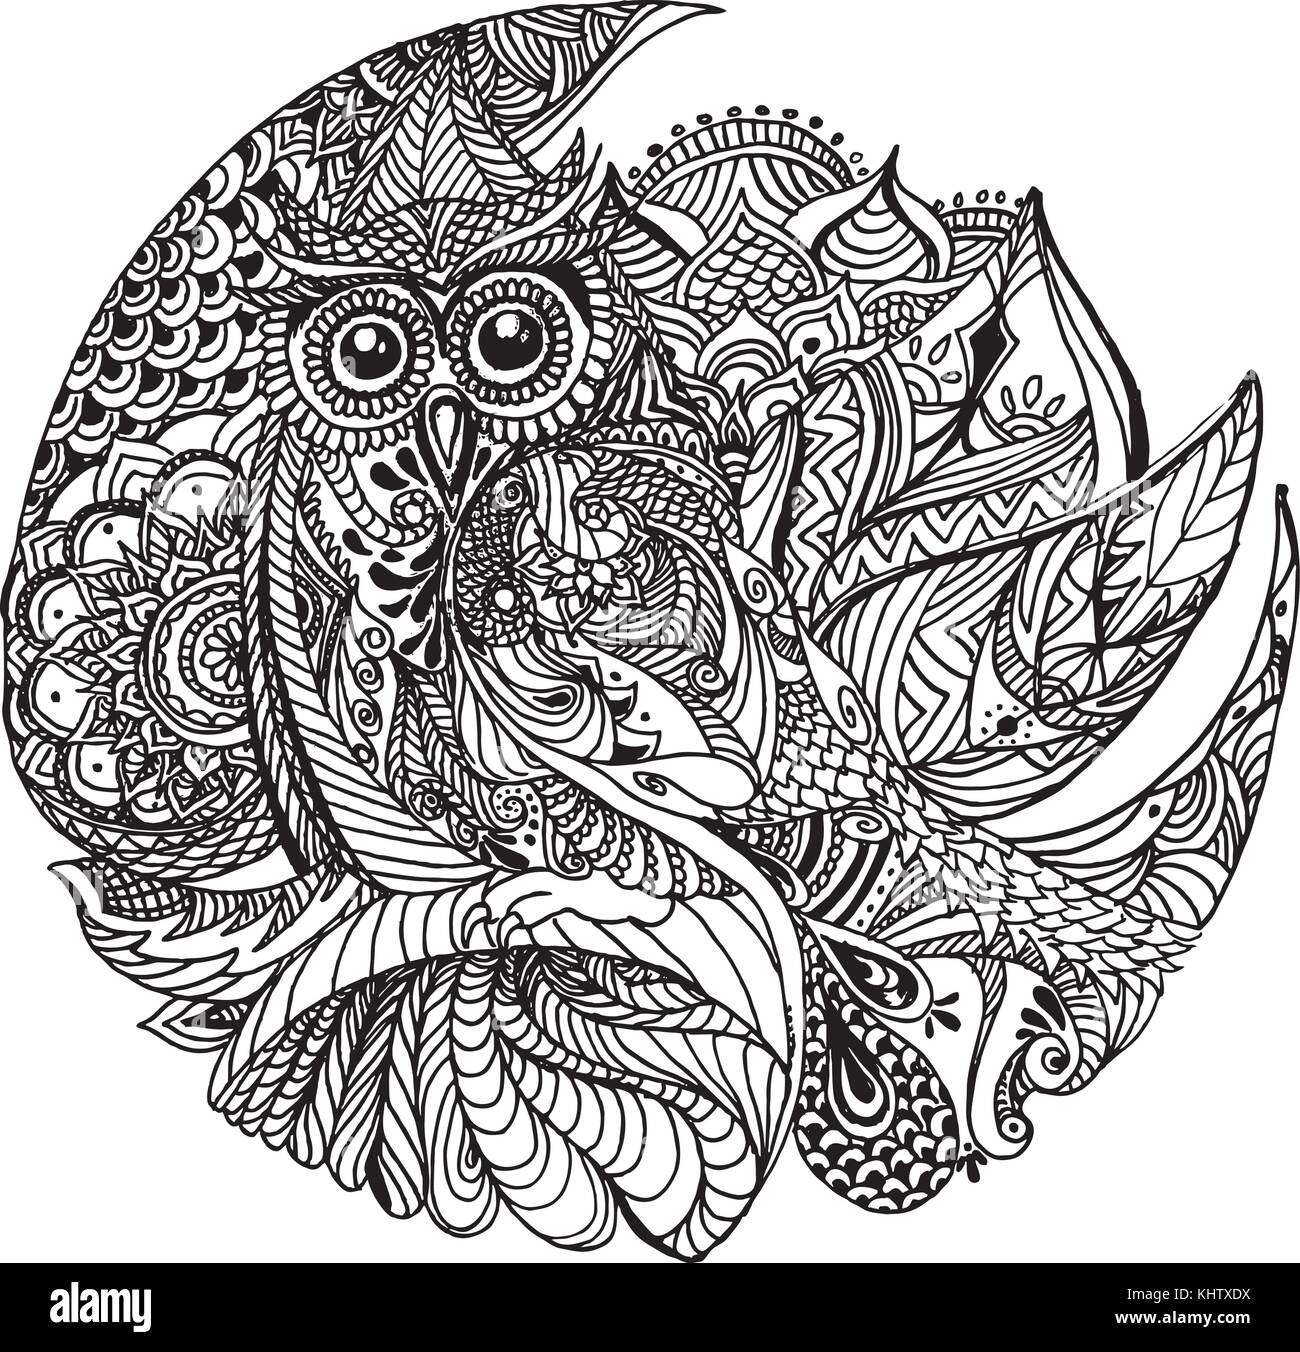 Floral owl design. Owl tattoo. Coloring book page Stock Vector Art ...